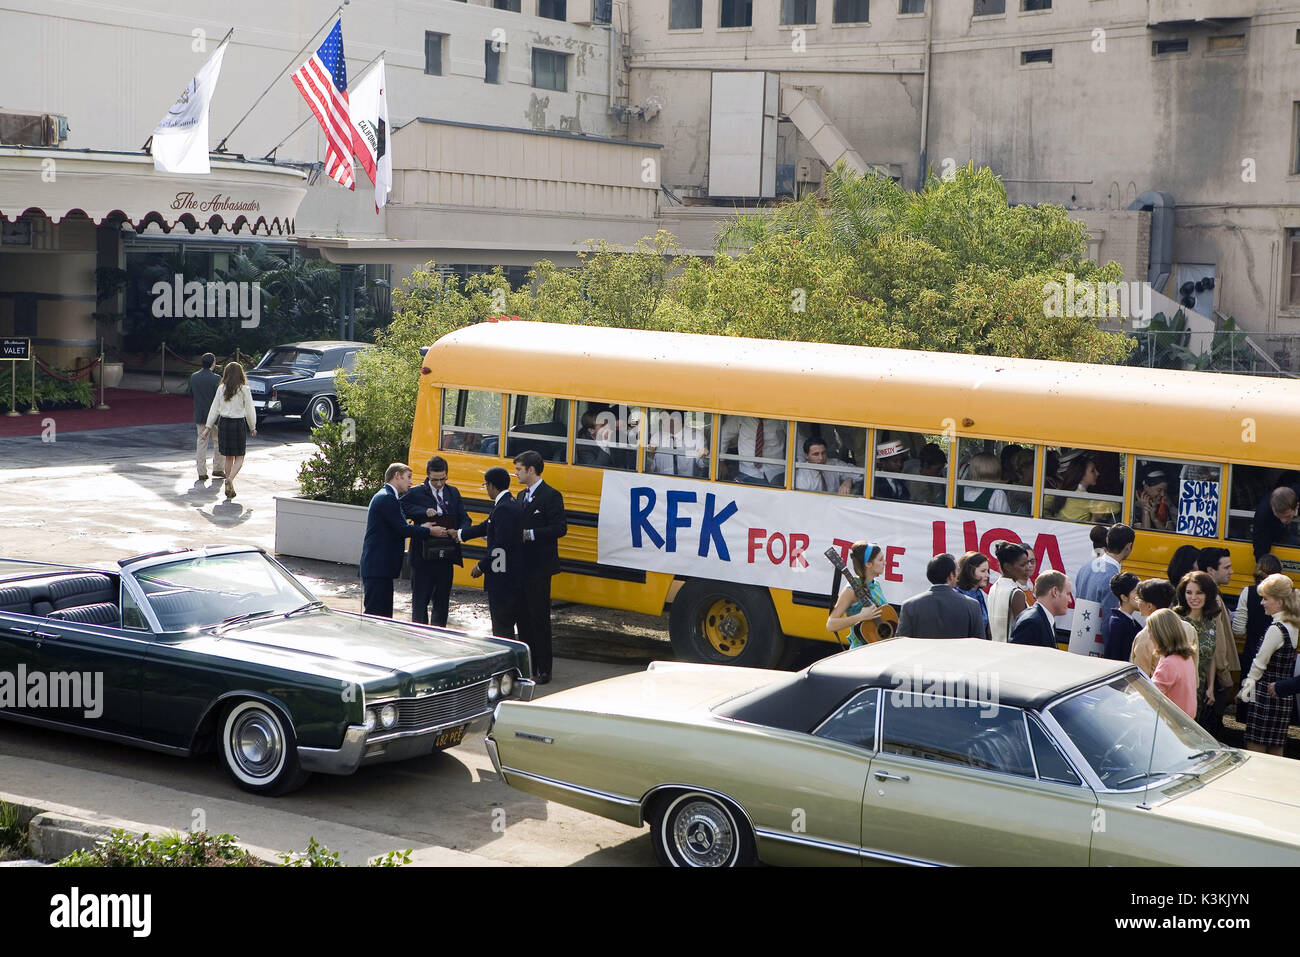 BOBBY [US 2006]  Robert Kennedy's campaign bus outside the Ambassador Hotel       Date: 2006 - Stock Image